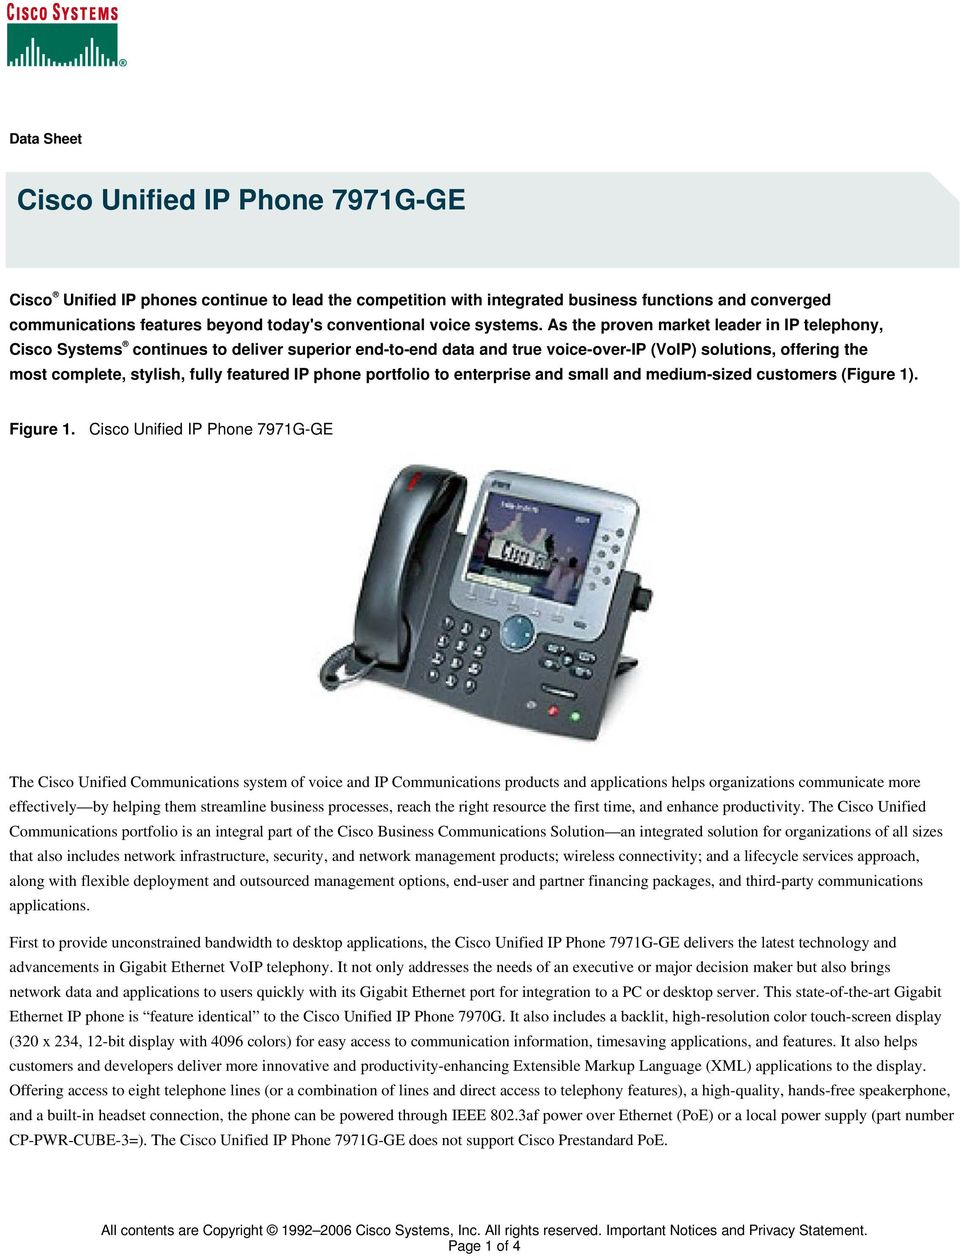 As the proven market leader in IP telephony, Cisco Systems continues to deliver superior end-to-end data and true voice-over-ip (VoIP) solutions, offering the most complete, stylish, fully featured